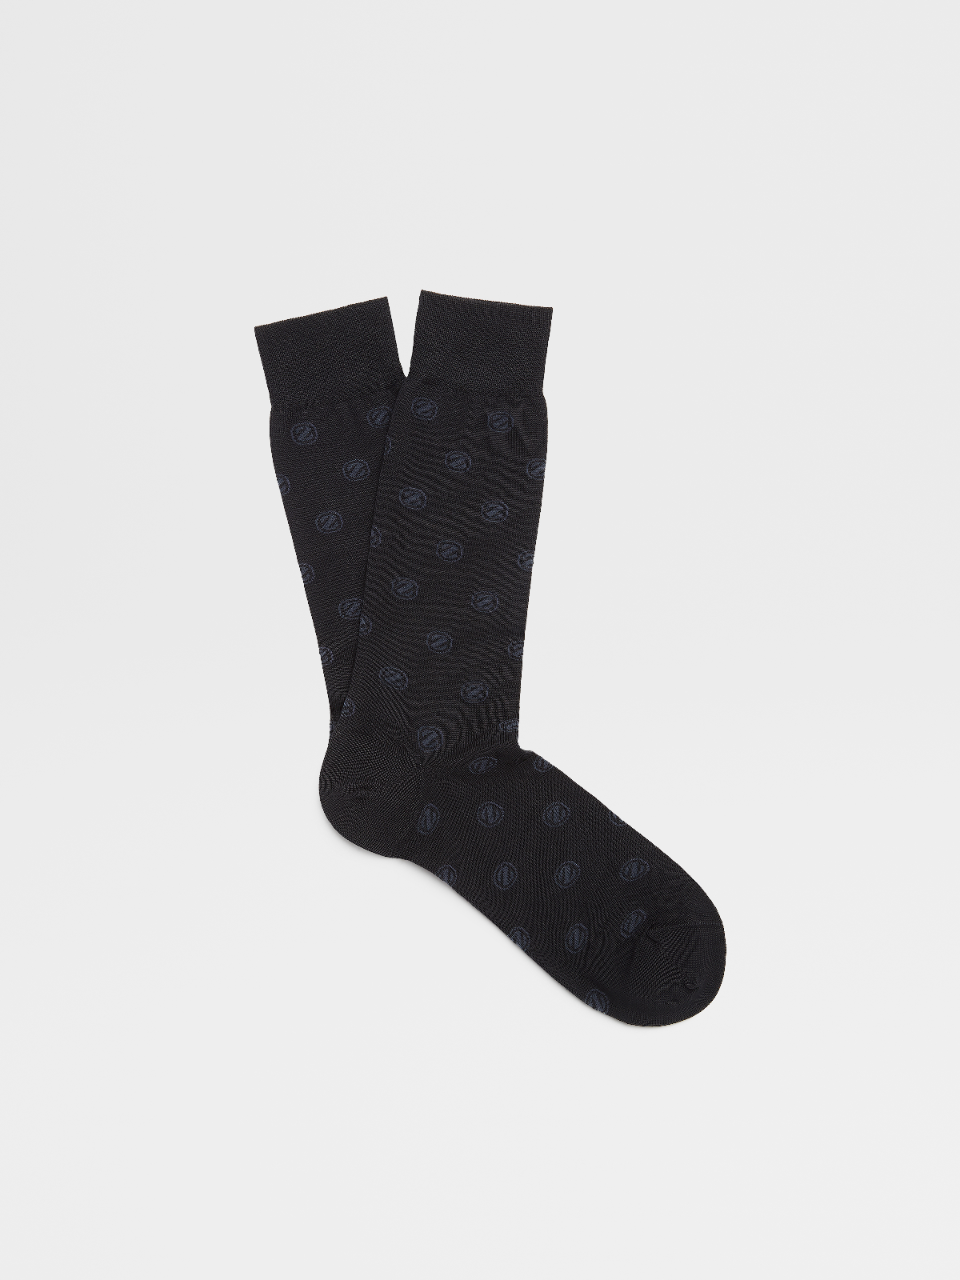 Cotton Blend Mid Calf Socks